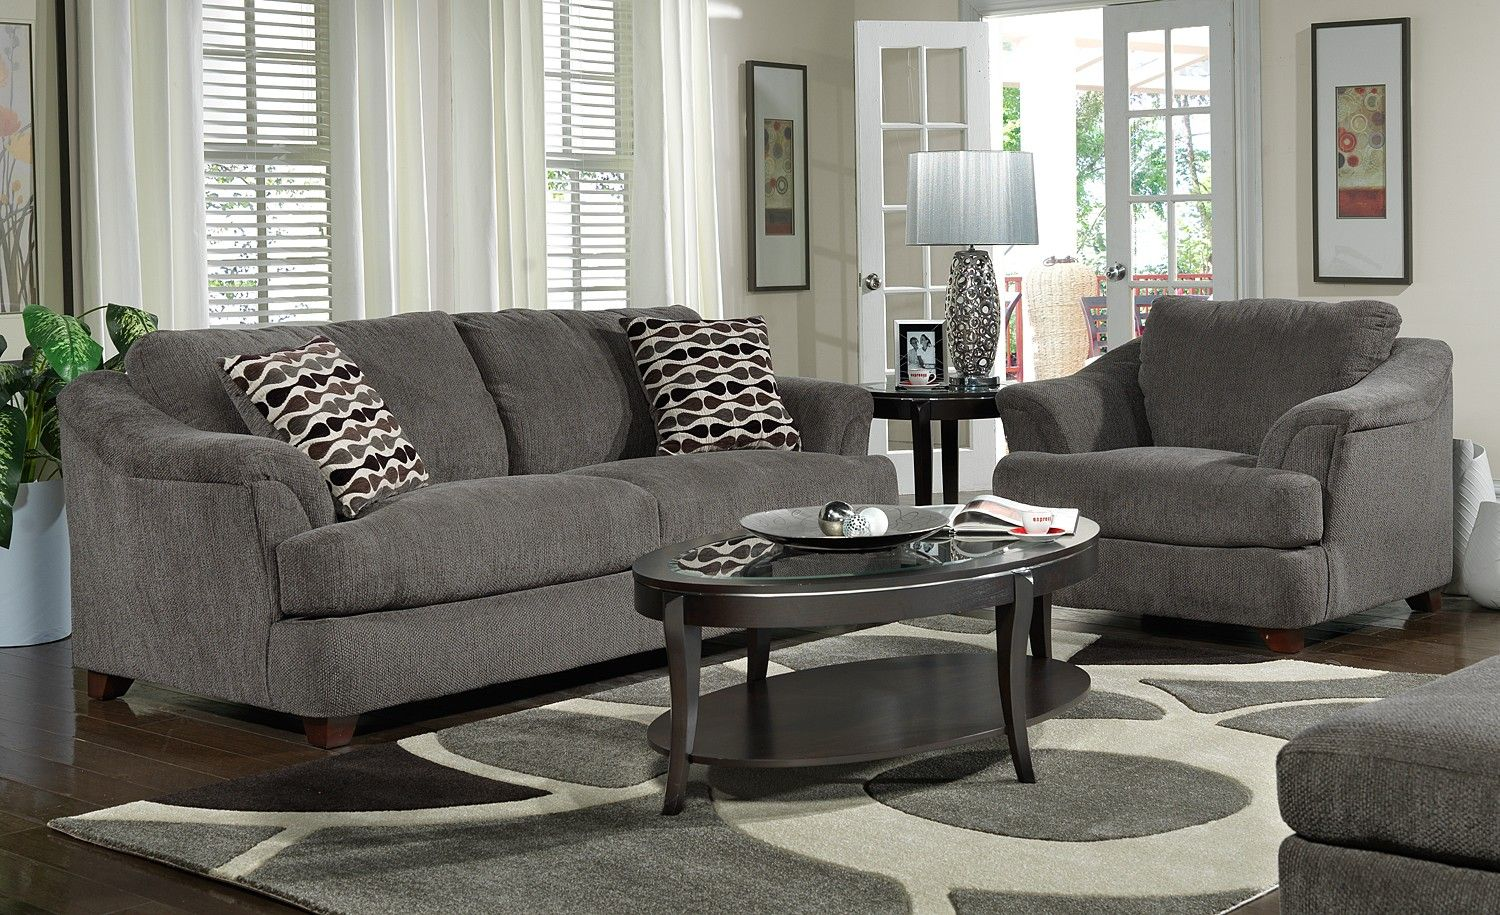 Furniture Grey Living Room Ideas With Cozy Dark Gray Sofa And